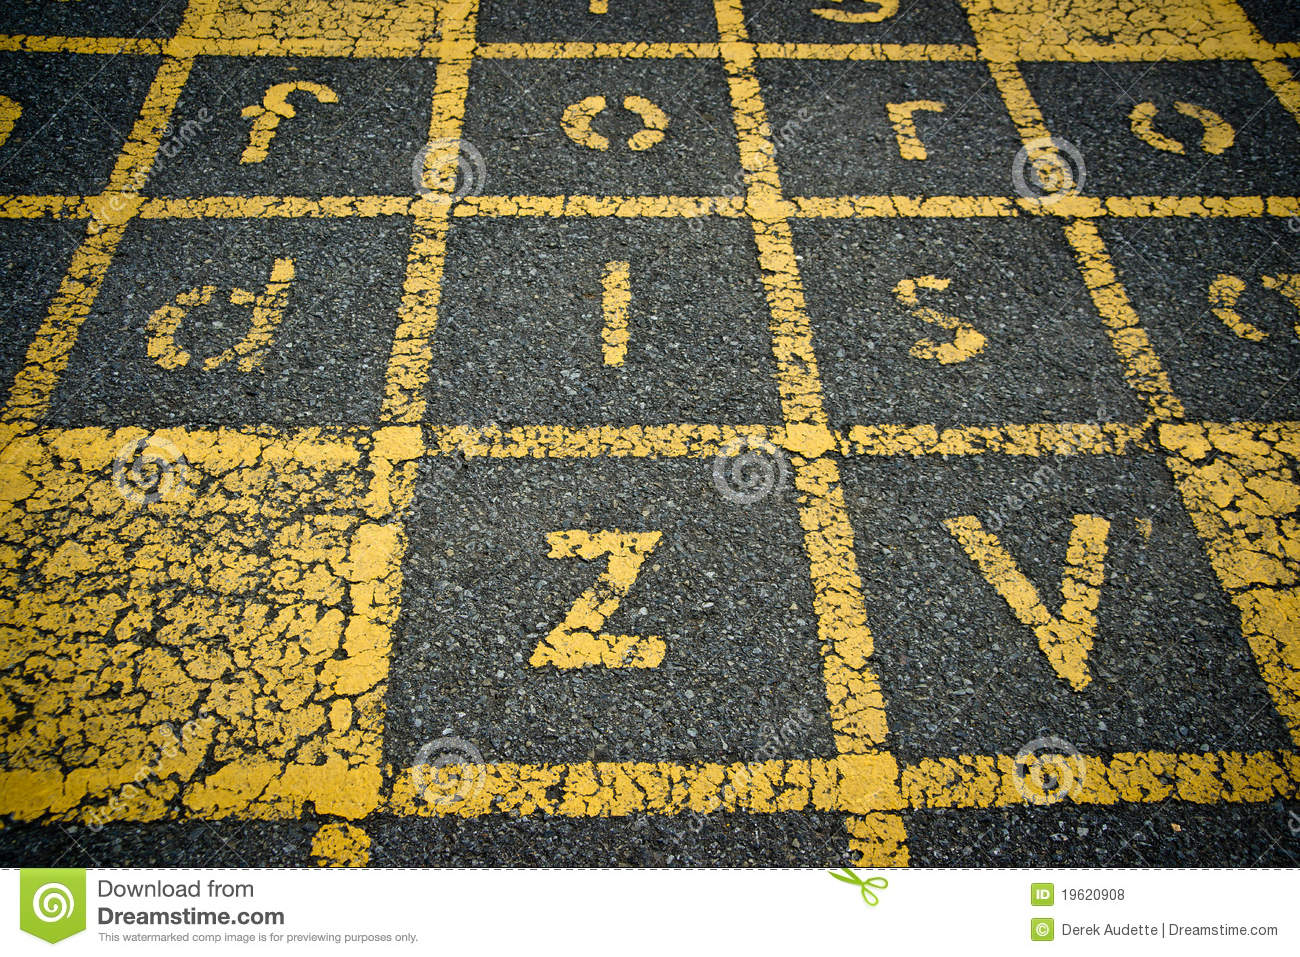 ... Painted Letters On Asphalt Royalty Free Stock Photos - Image: 19620908: dreamstime.com/royalty-free-stock-photos-yellow-painted-letters...